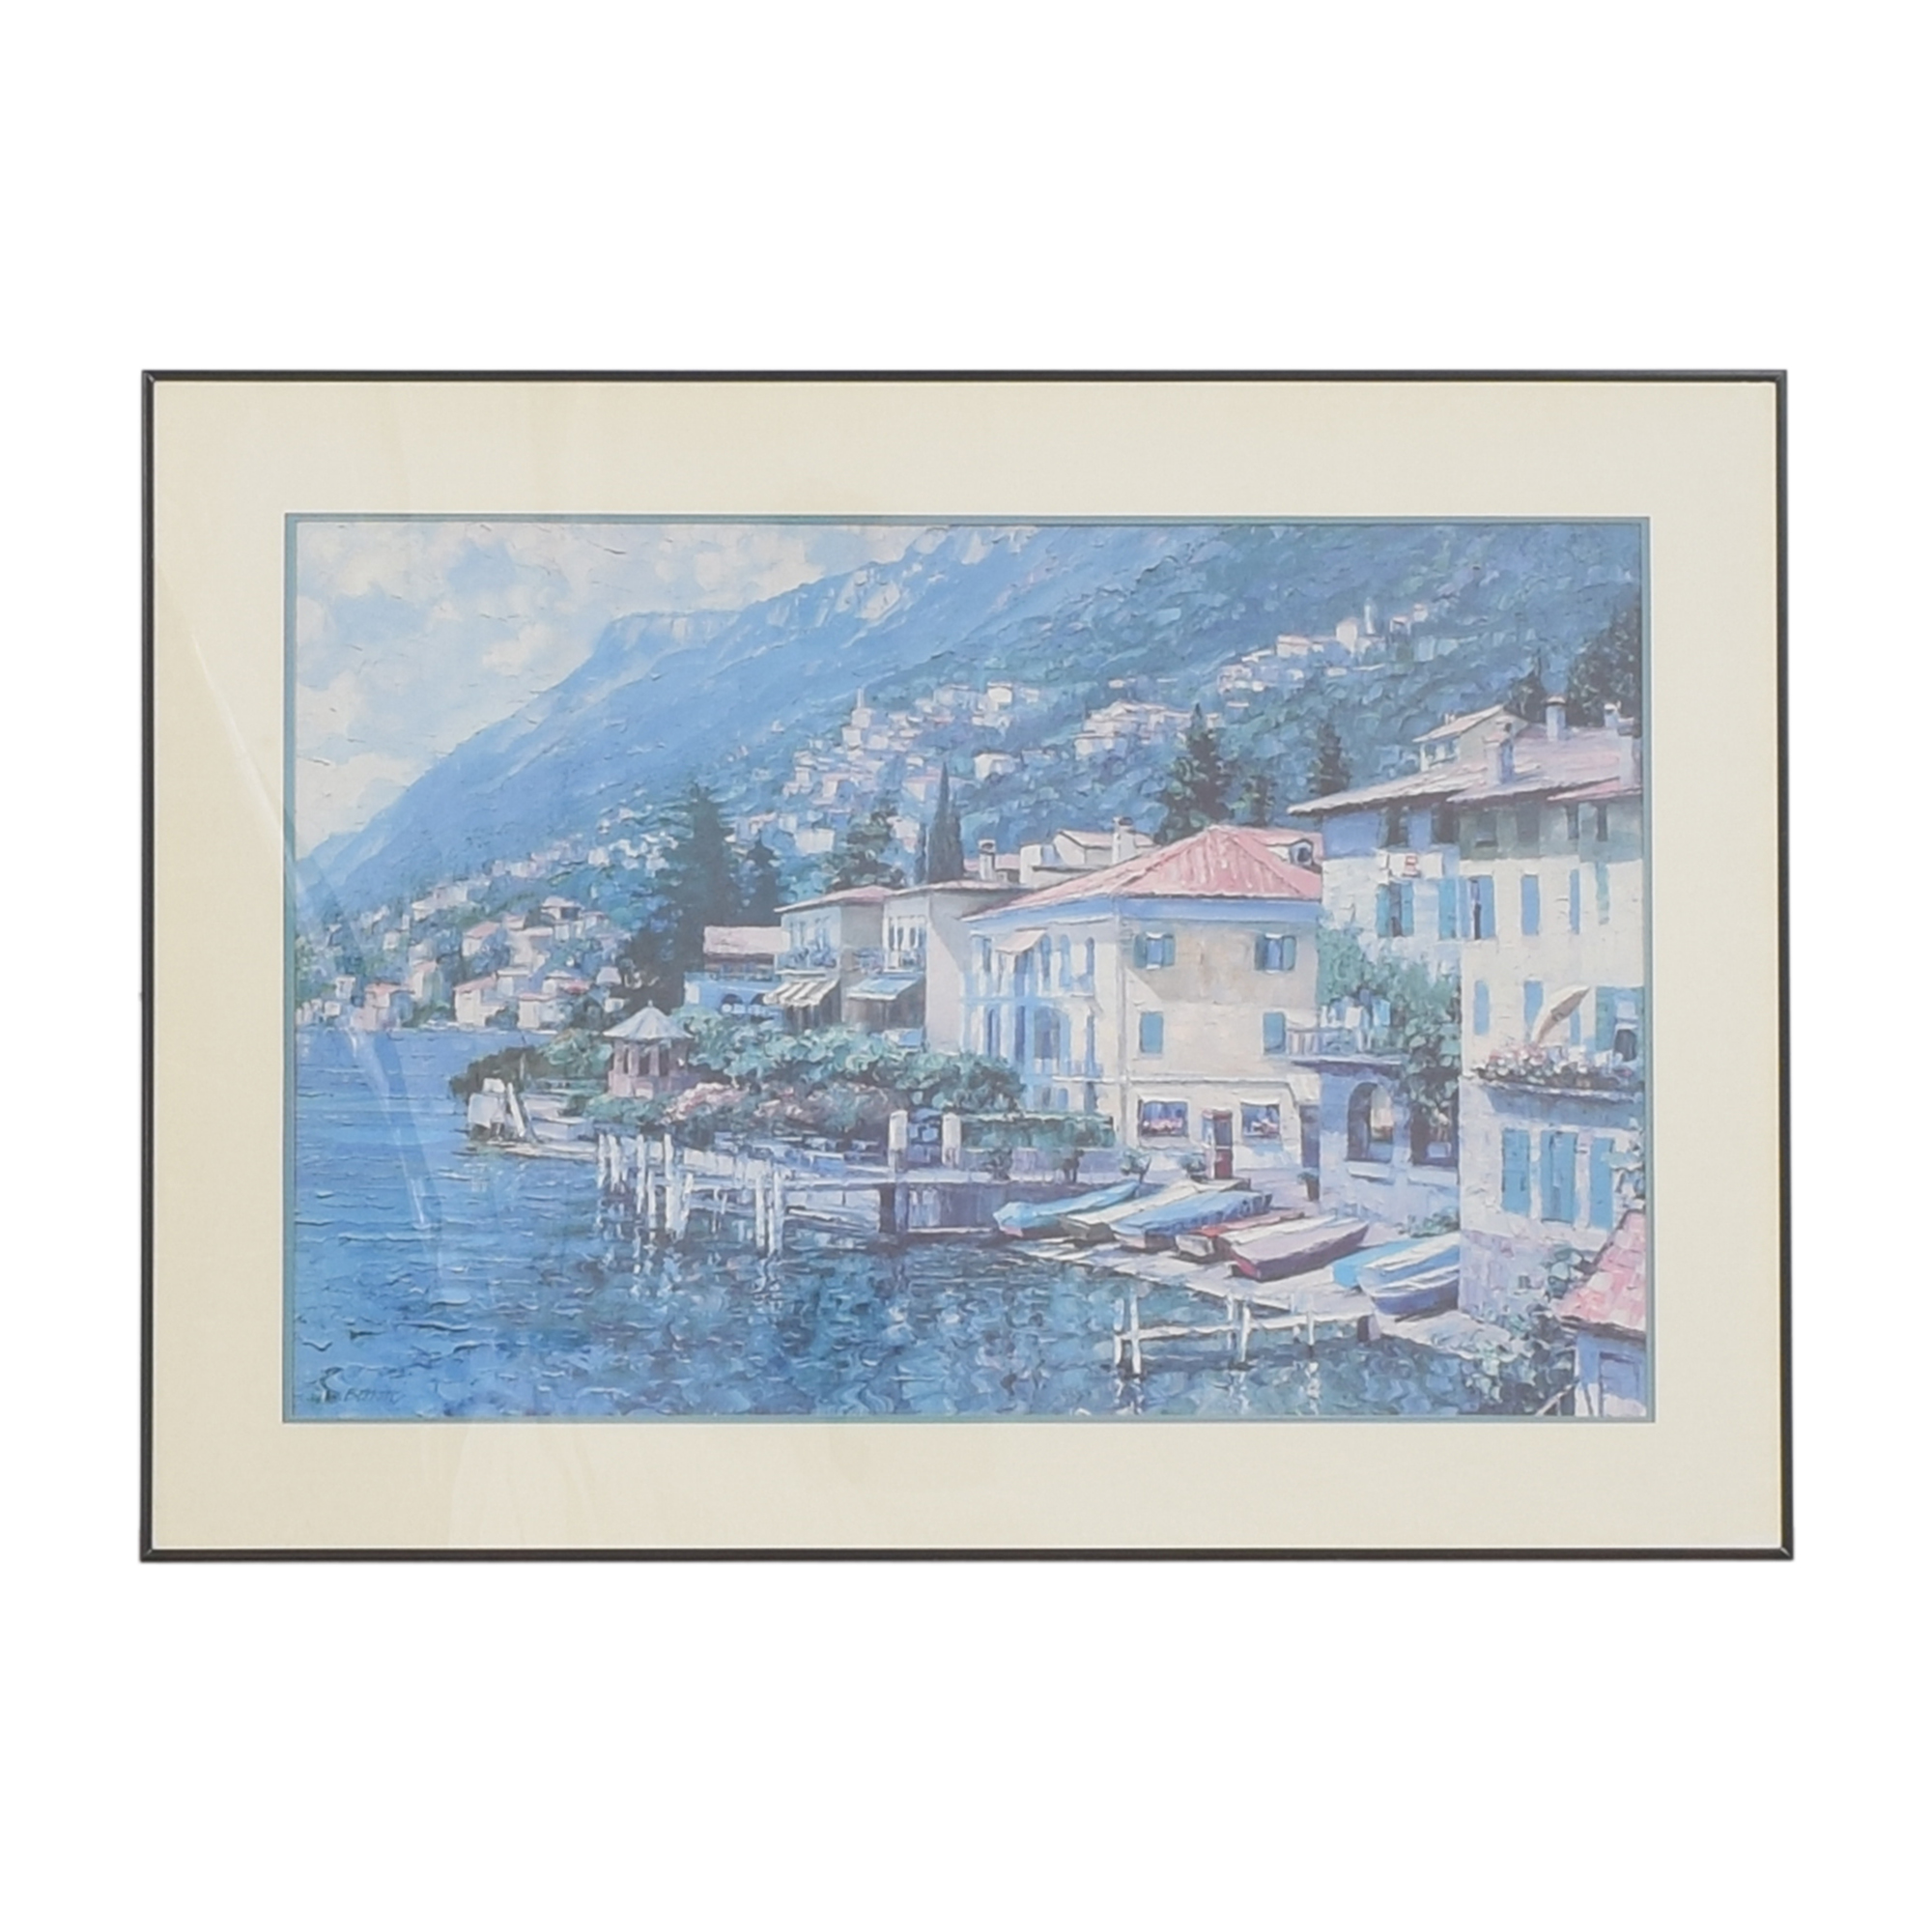 shop Lugano, Italy 1991 Wall Art